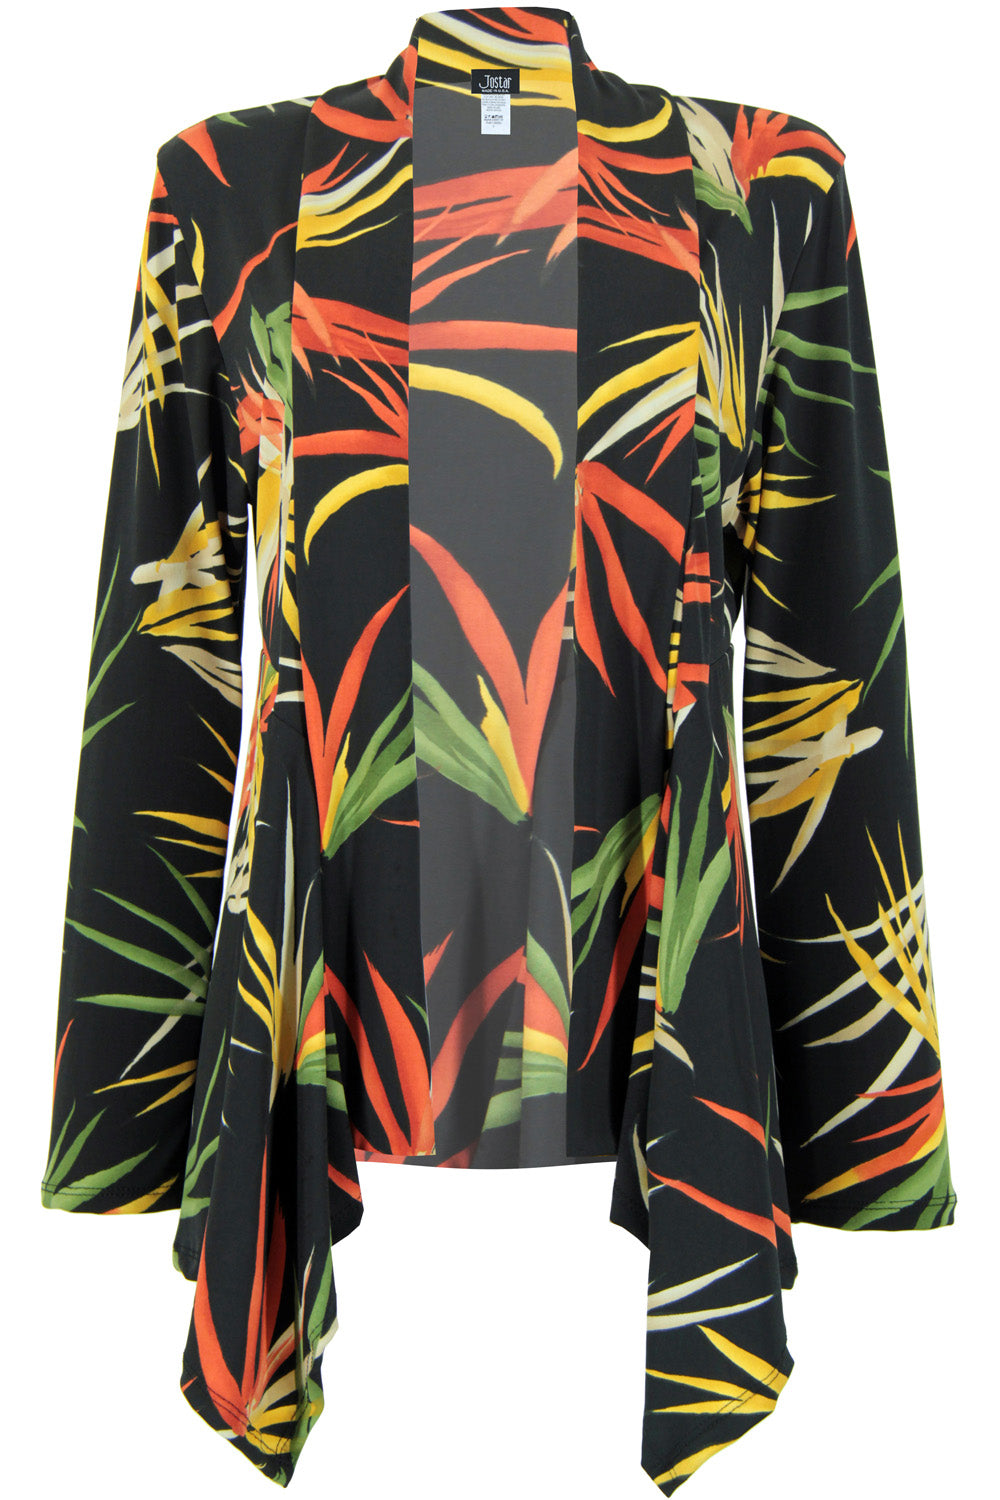 Jostar Women's Stretchy Print Mid Cut Jacket Long Sleeve Print Plus, 428BN-LXP-W679 - Jostar Online